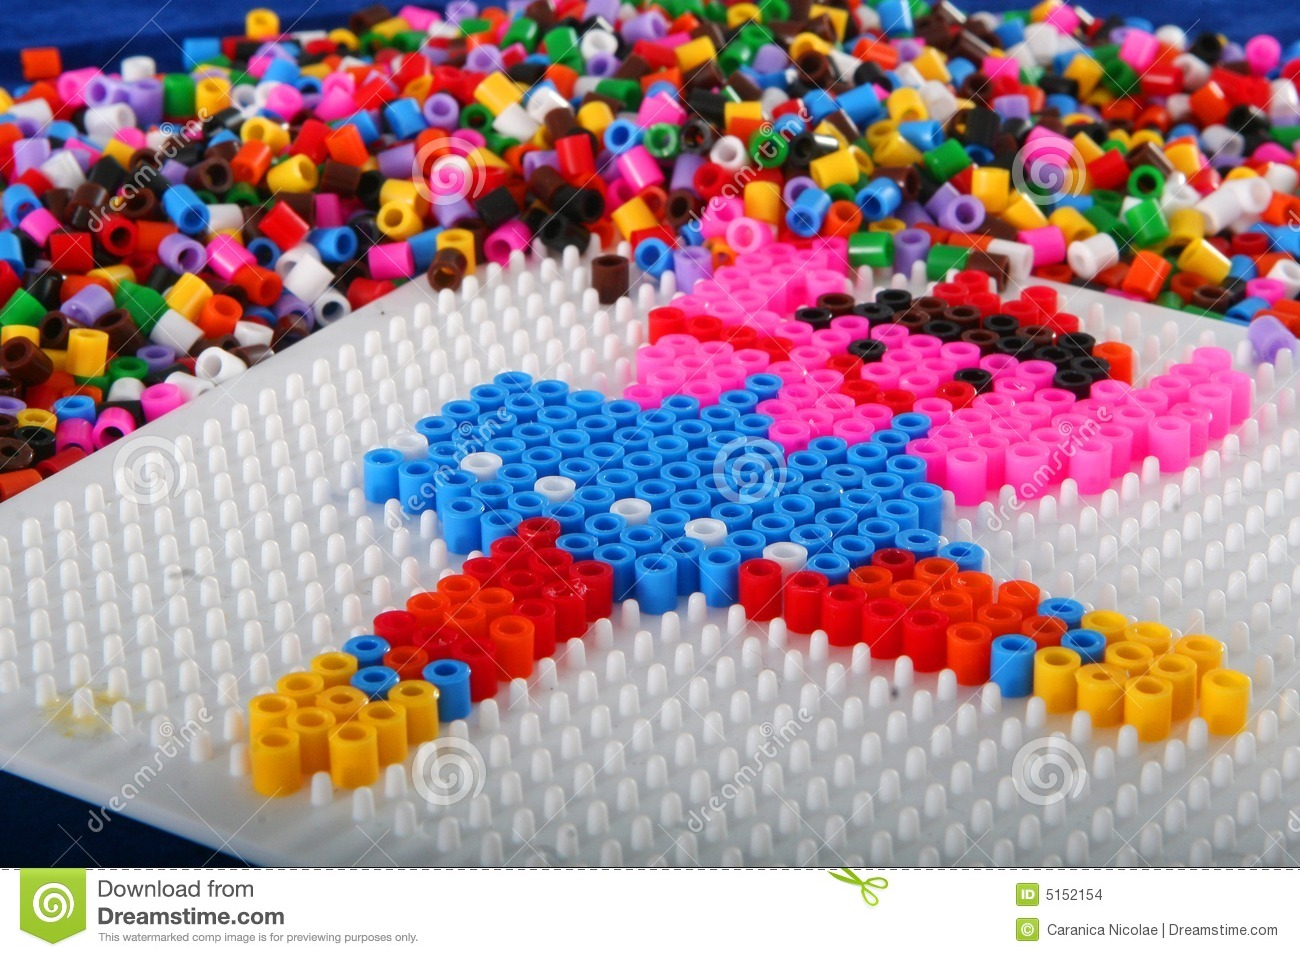 Pegboard and beads craft stock images image 5152154 for Bead craft ideas for kids